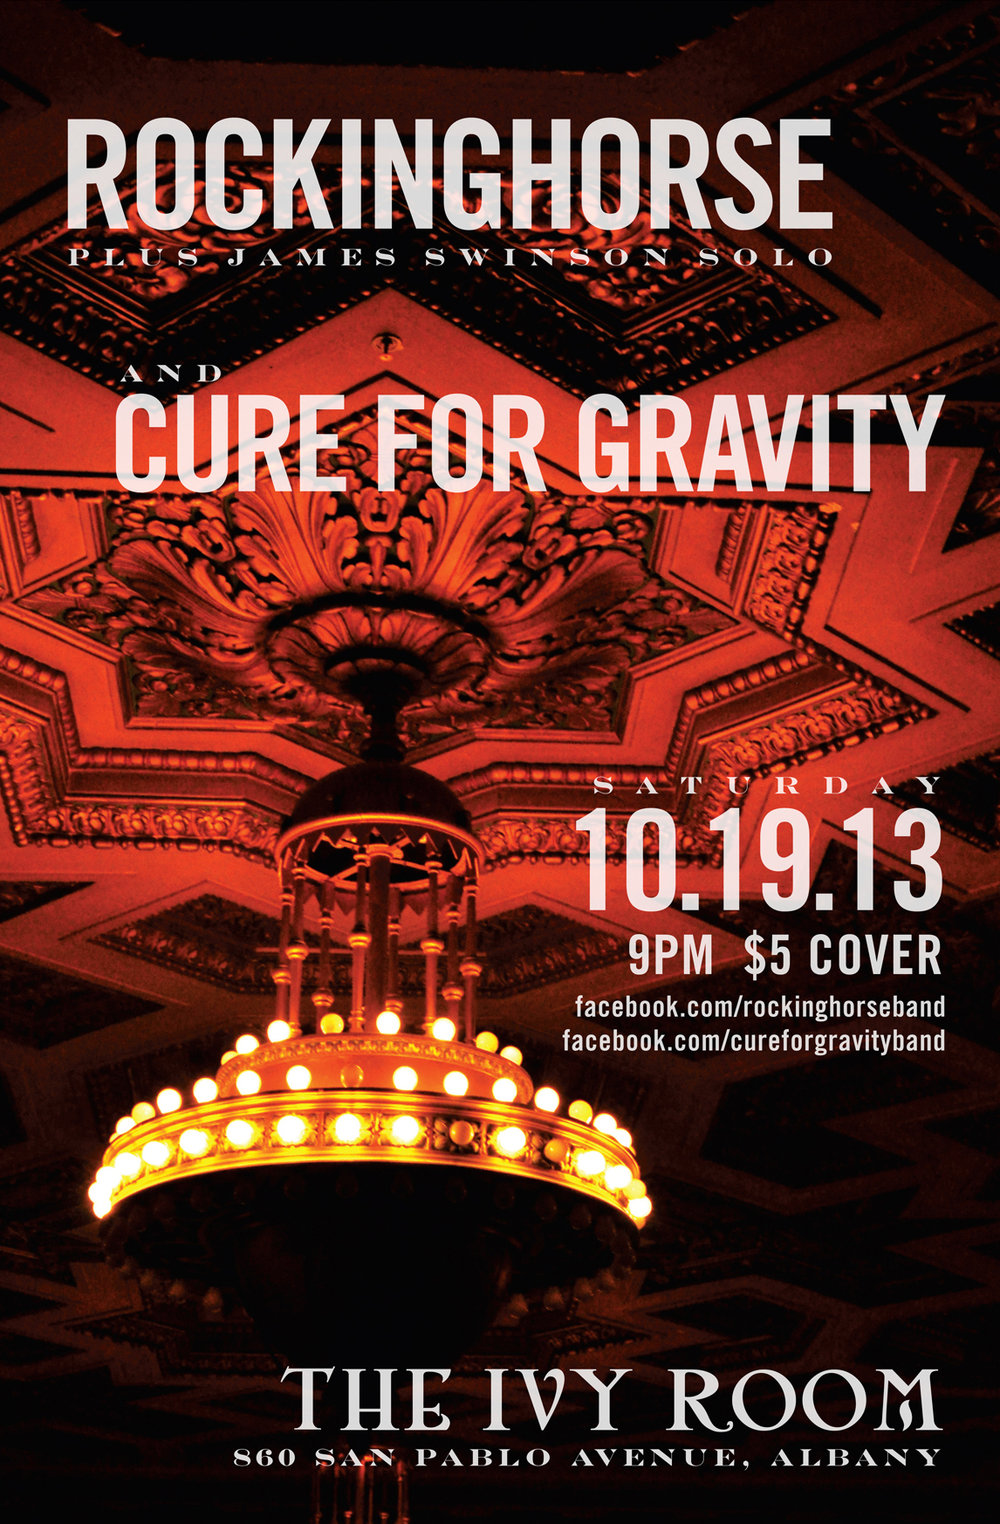 Rockinghorse / Cure for Gravity at Ivy Room Show Poster